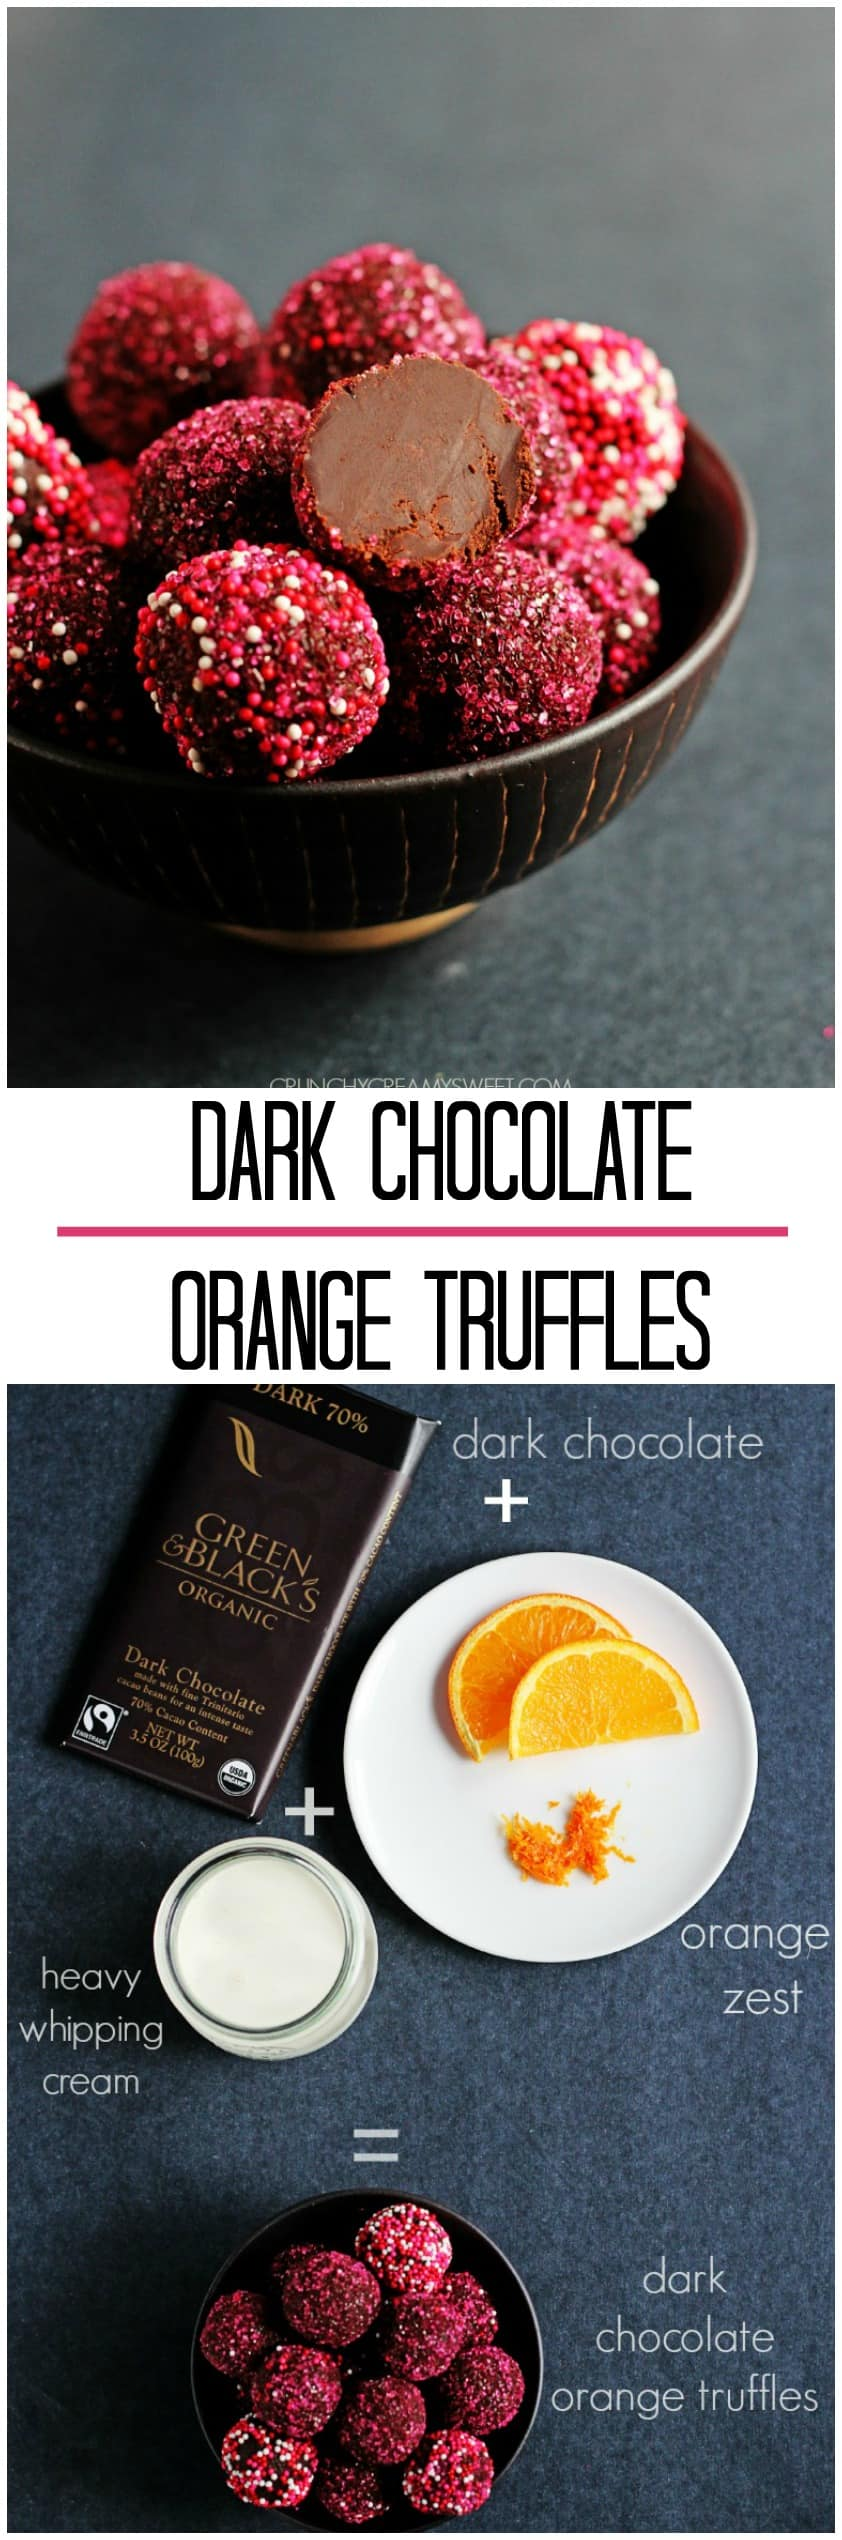 How to make dark chocolate orange truffles with only 3 ingredients @crunchycreamysw 3 Ingredient Dark Chocolate Orange Truffles